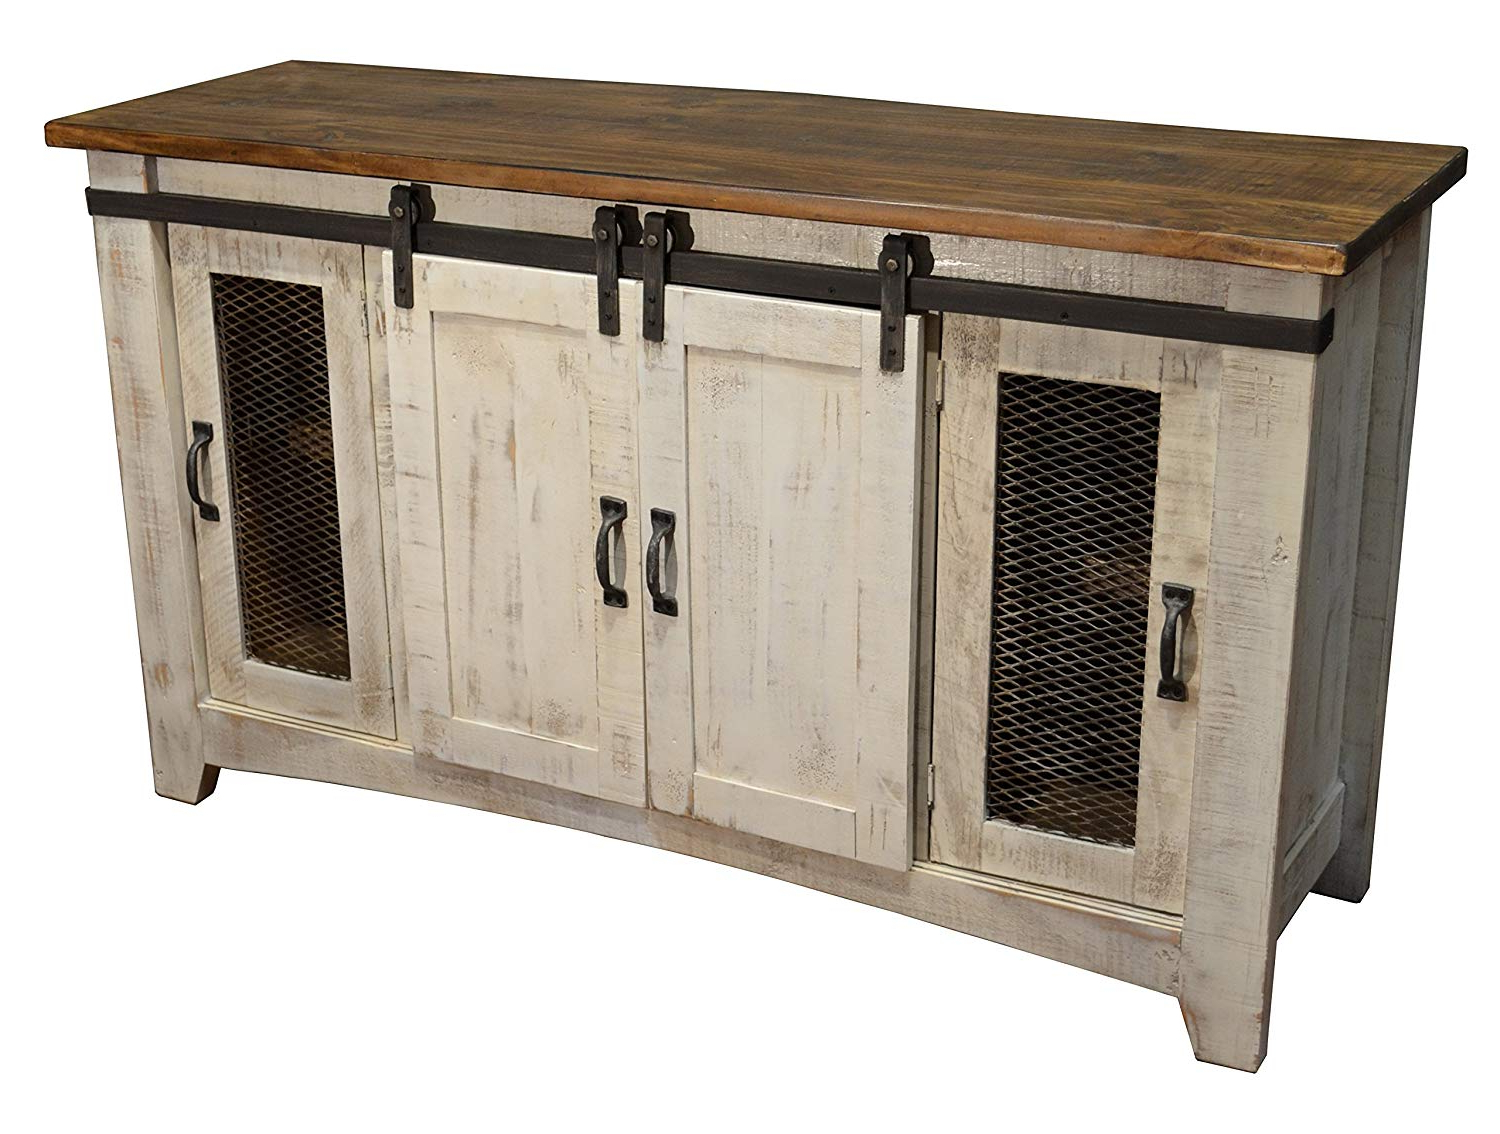 Rustic Tv Stands For Sale With Regard To 2018 Rustic Tv Cabinets Antique Stand For Sale Console Table Media With (Gallery 1 of 20)